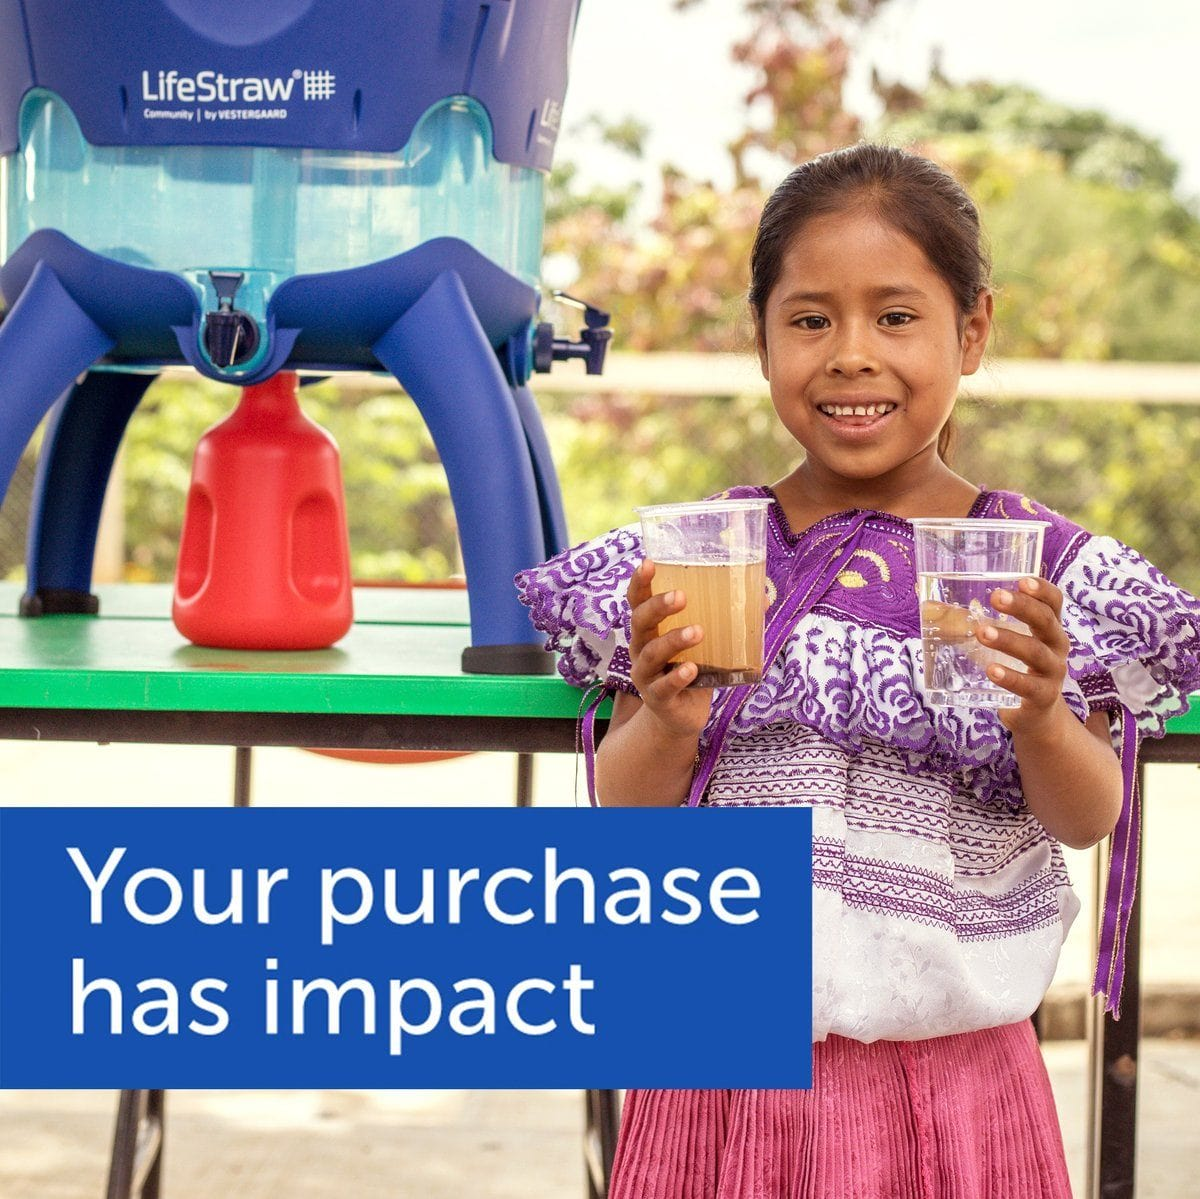 LifeStraw Go 22 oz Water Filter Bottle and Survival Water Filter giving back to the community